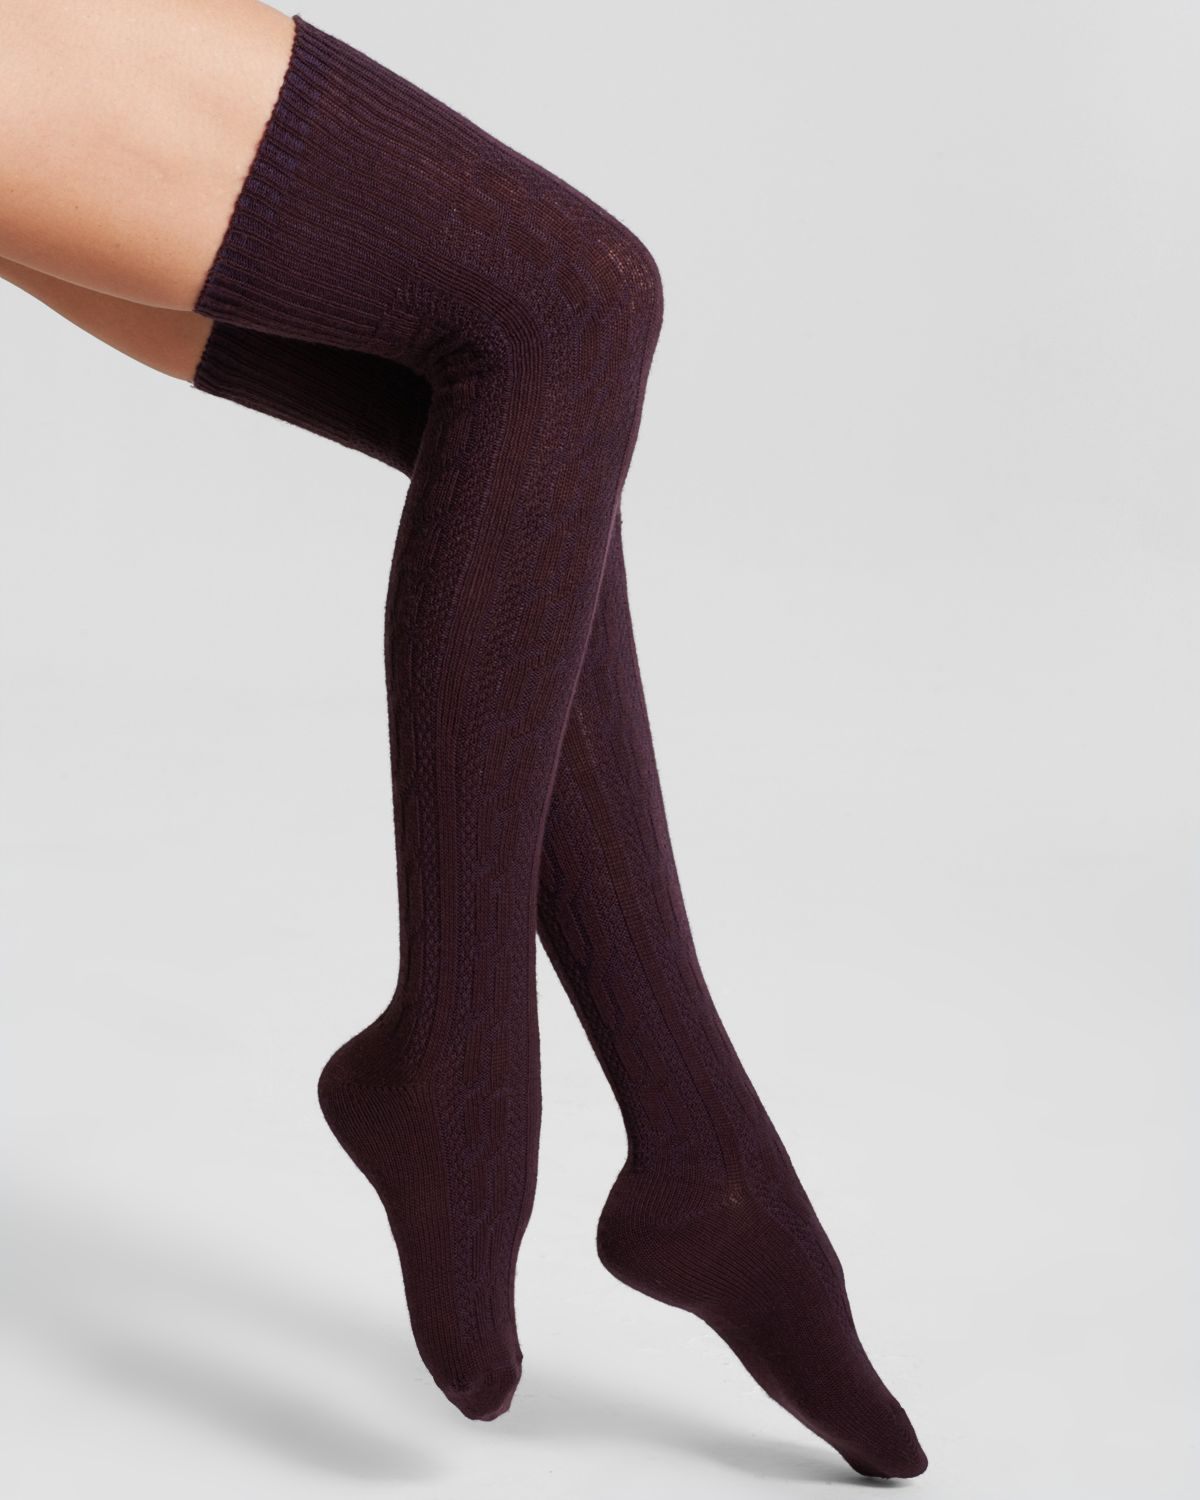 8d660fc9f9eb6 Gallery. Previously sold at: Bloomingdale's · Women's Knee High Socks